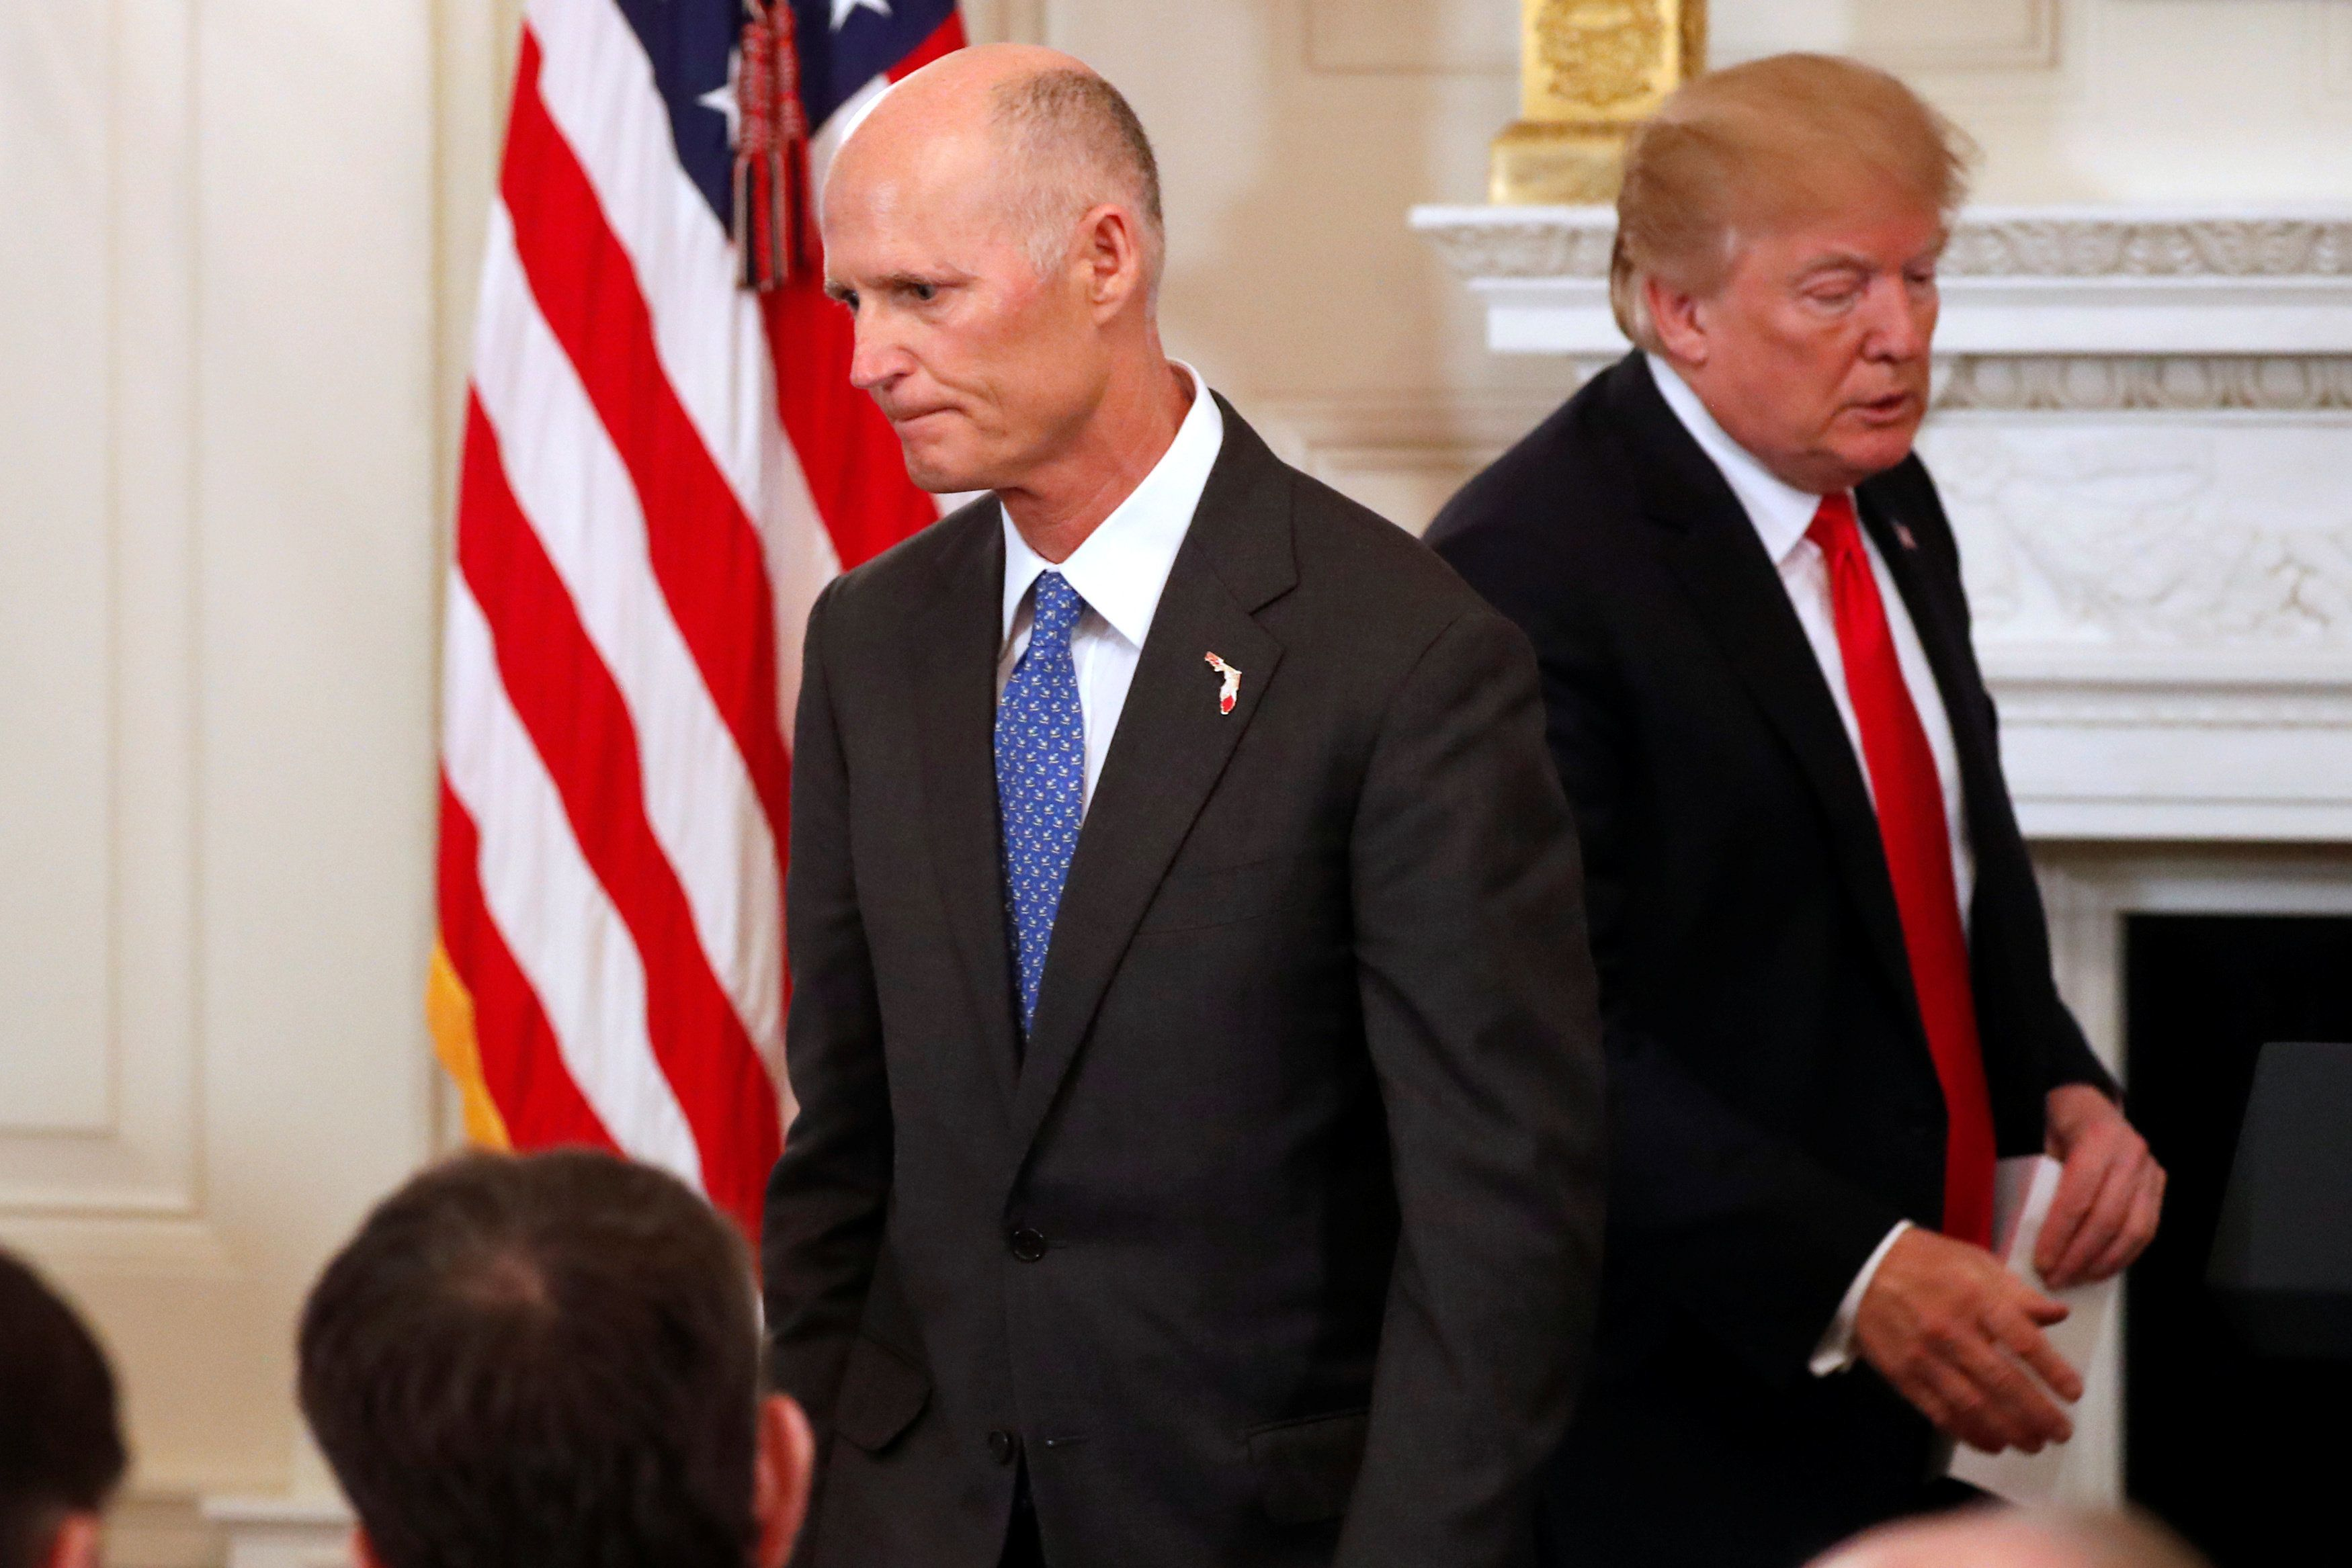 Florida Governor Rick Scott and U.S. President Donald Trump cross paths during a discussion about school shootings with state governors from around the country at the White House in Washington, U.S. February 26, 2018.  REUTERS/Jonathan Ernst